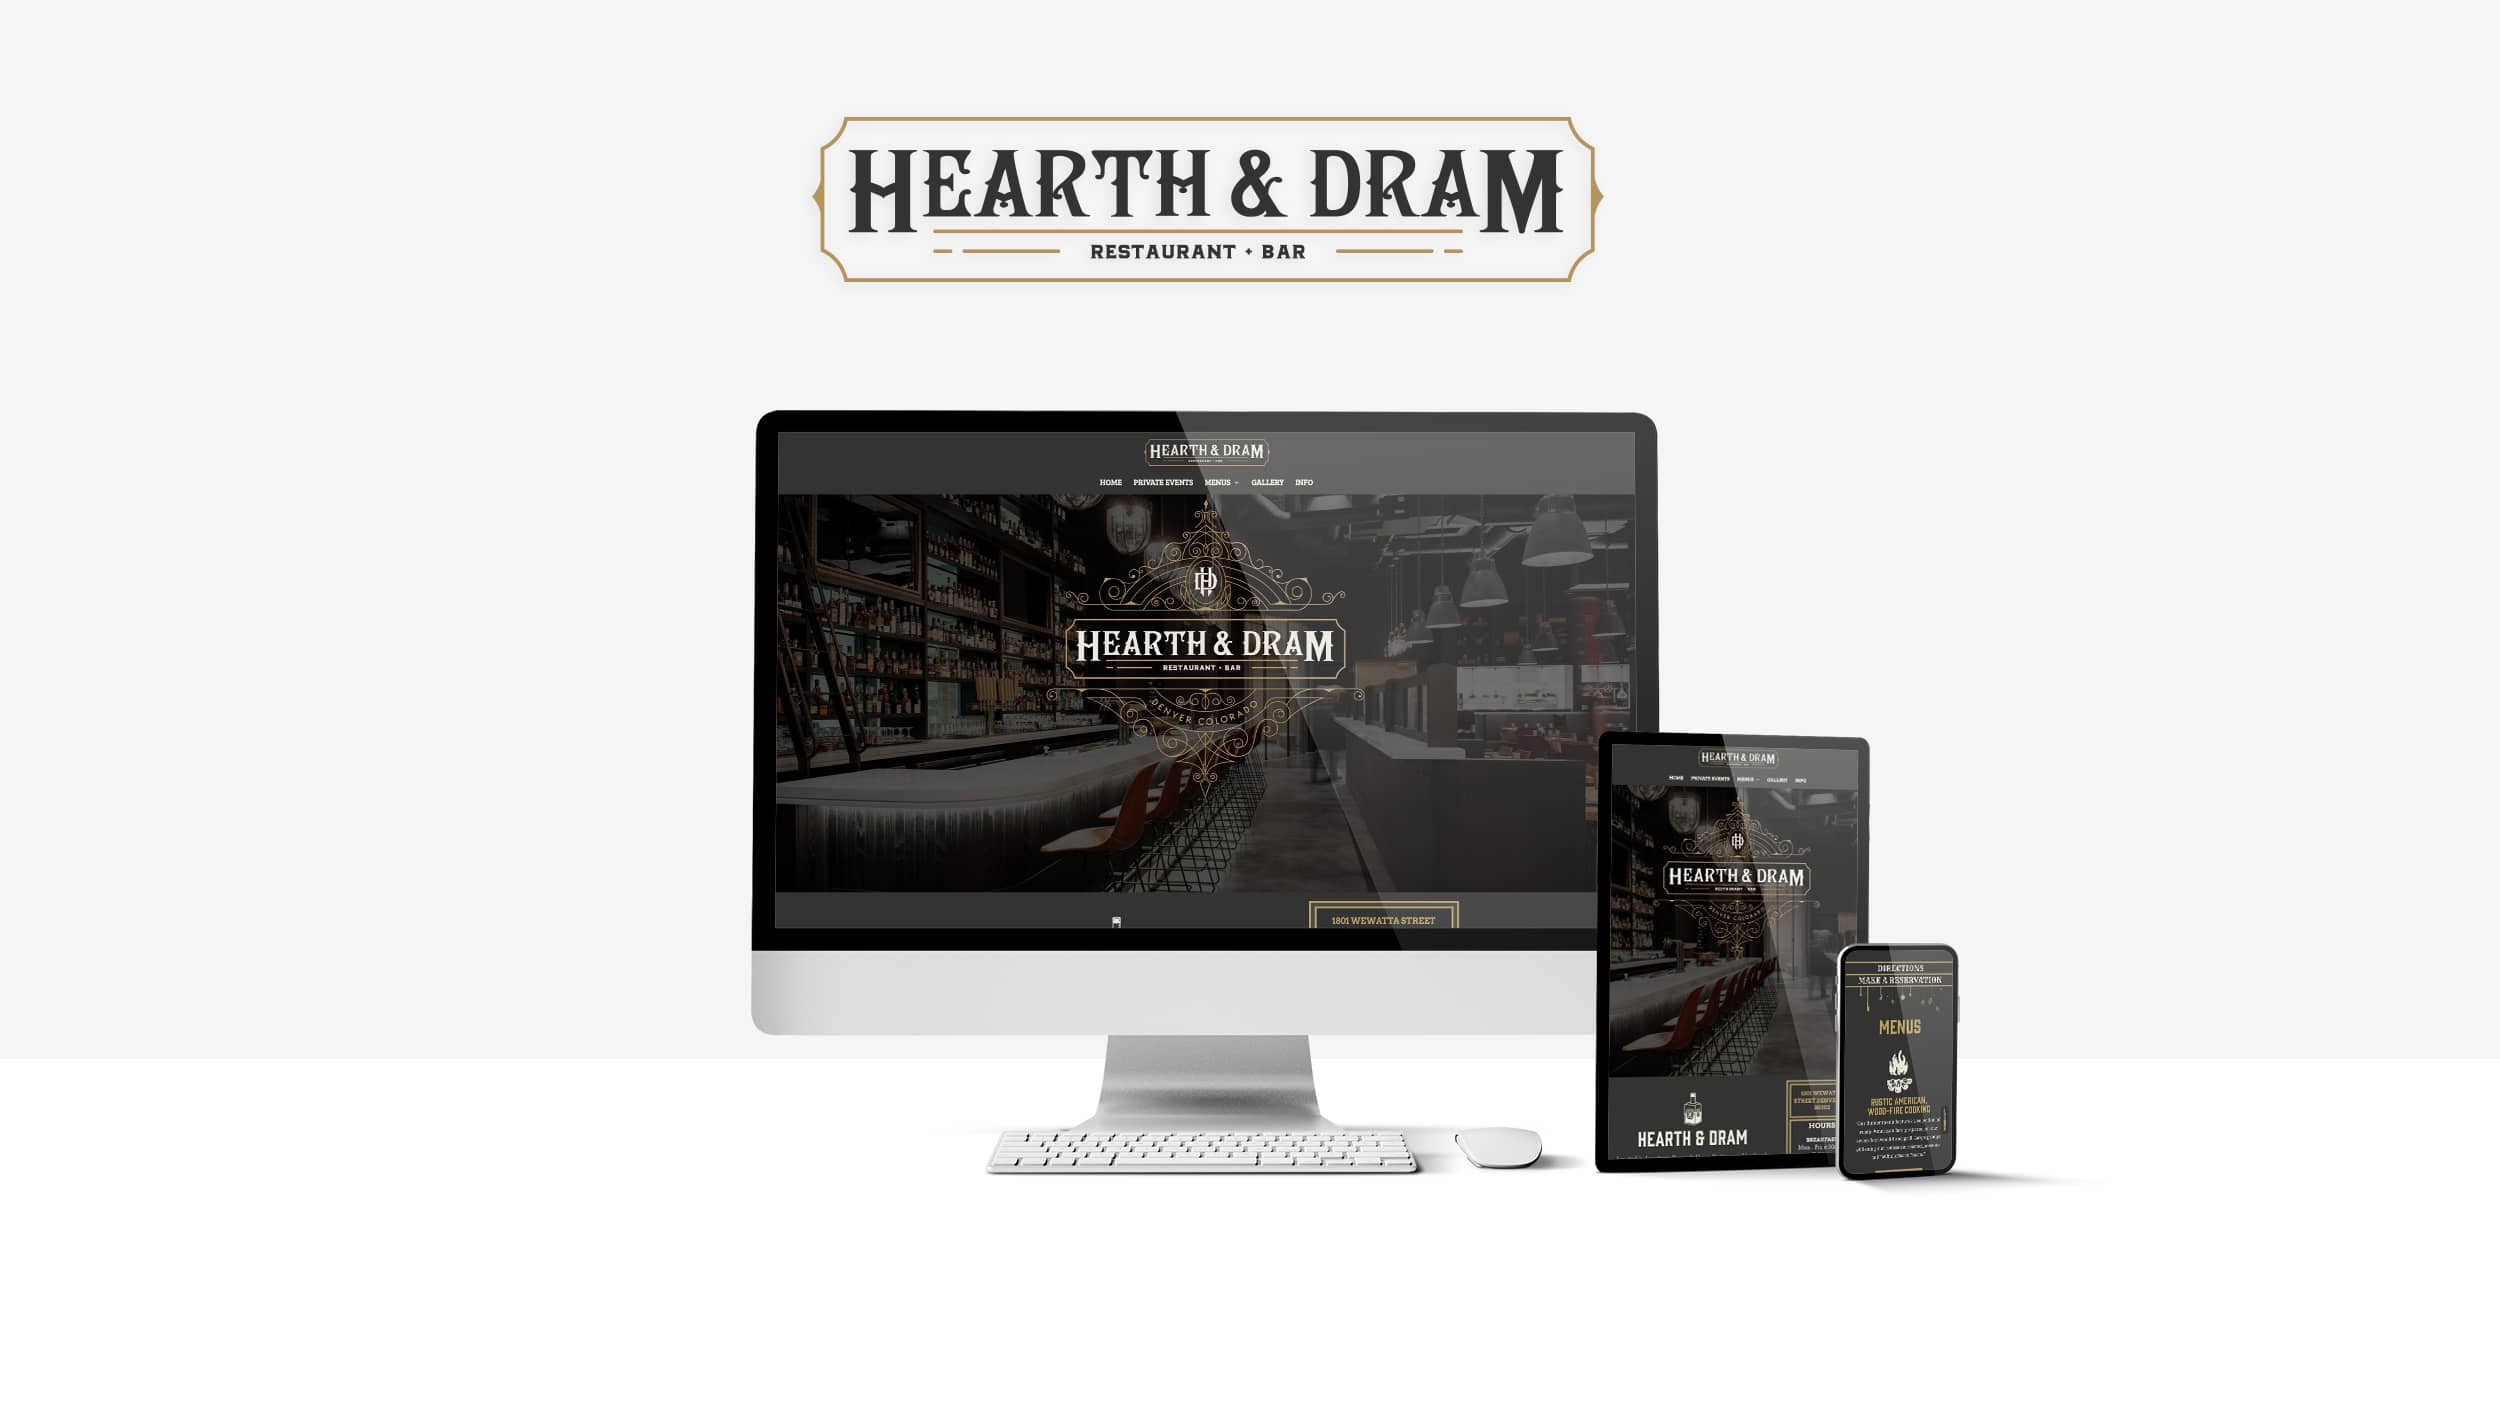 Hearth & Dram website on multiple devices